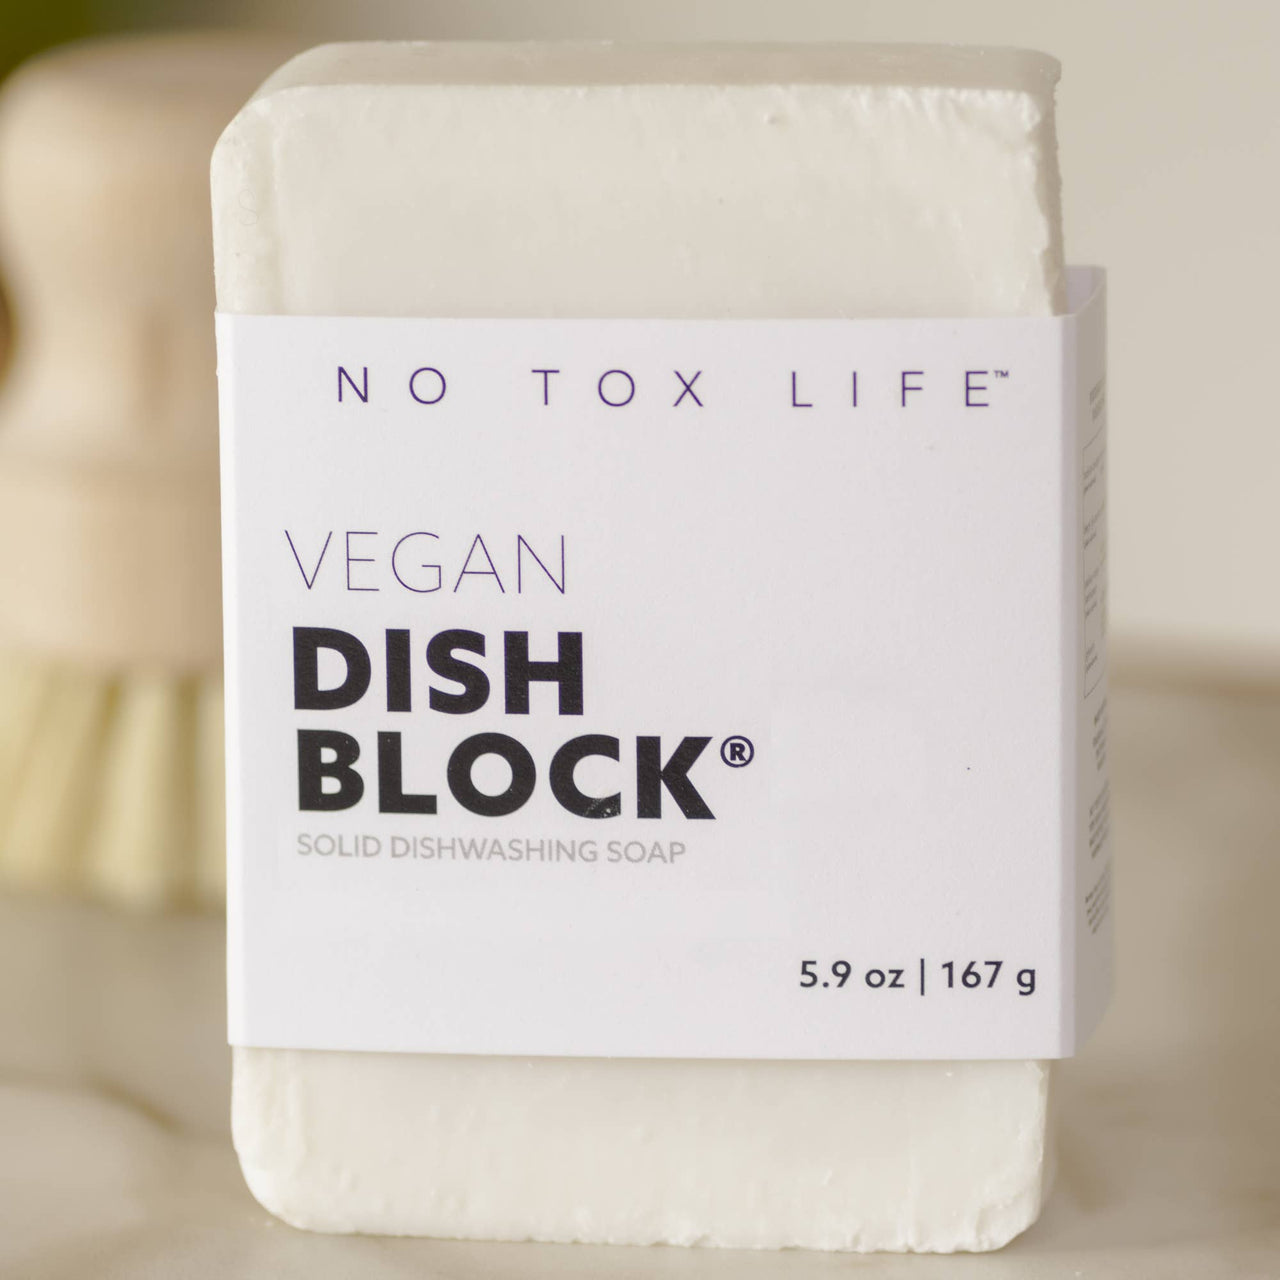 Vegan Dish Block